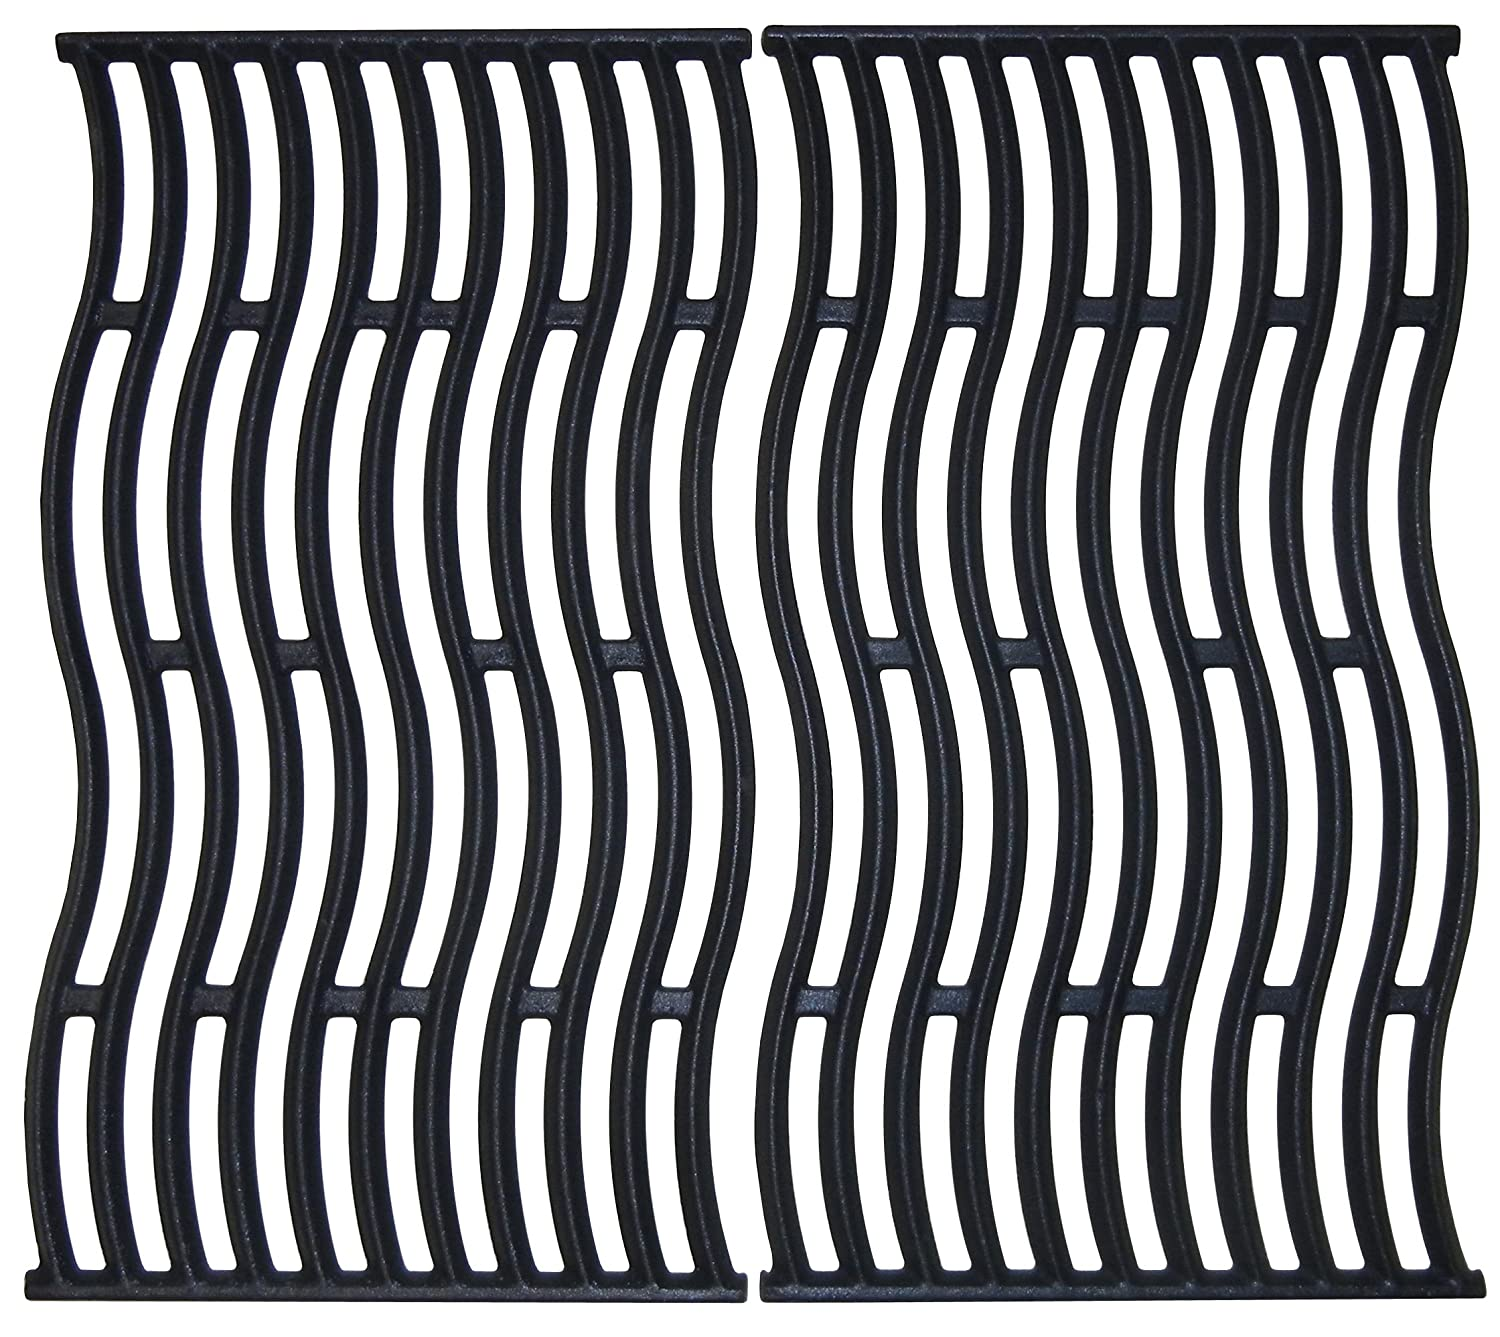 Music City Metals Matte Cast Iron Cooking Grid Replacement for Napoleon Gas Grill Models, Set of 2 67682